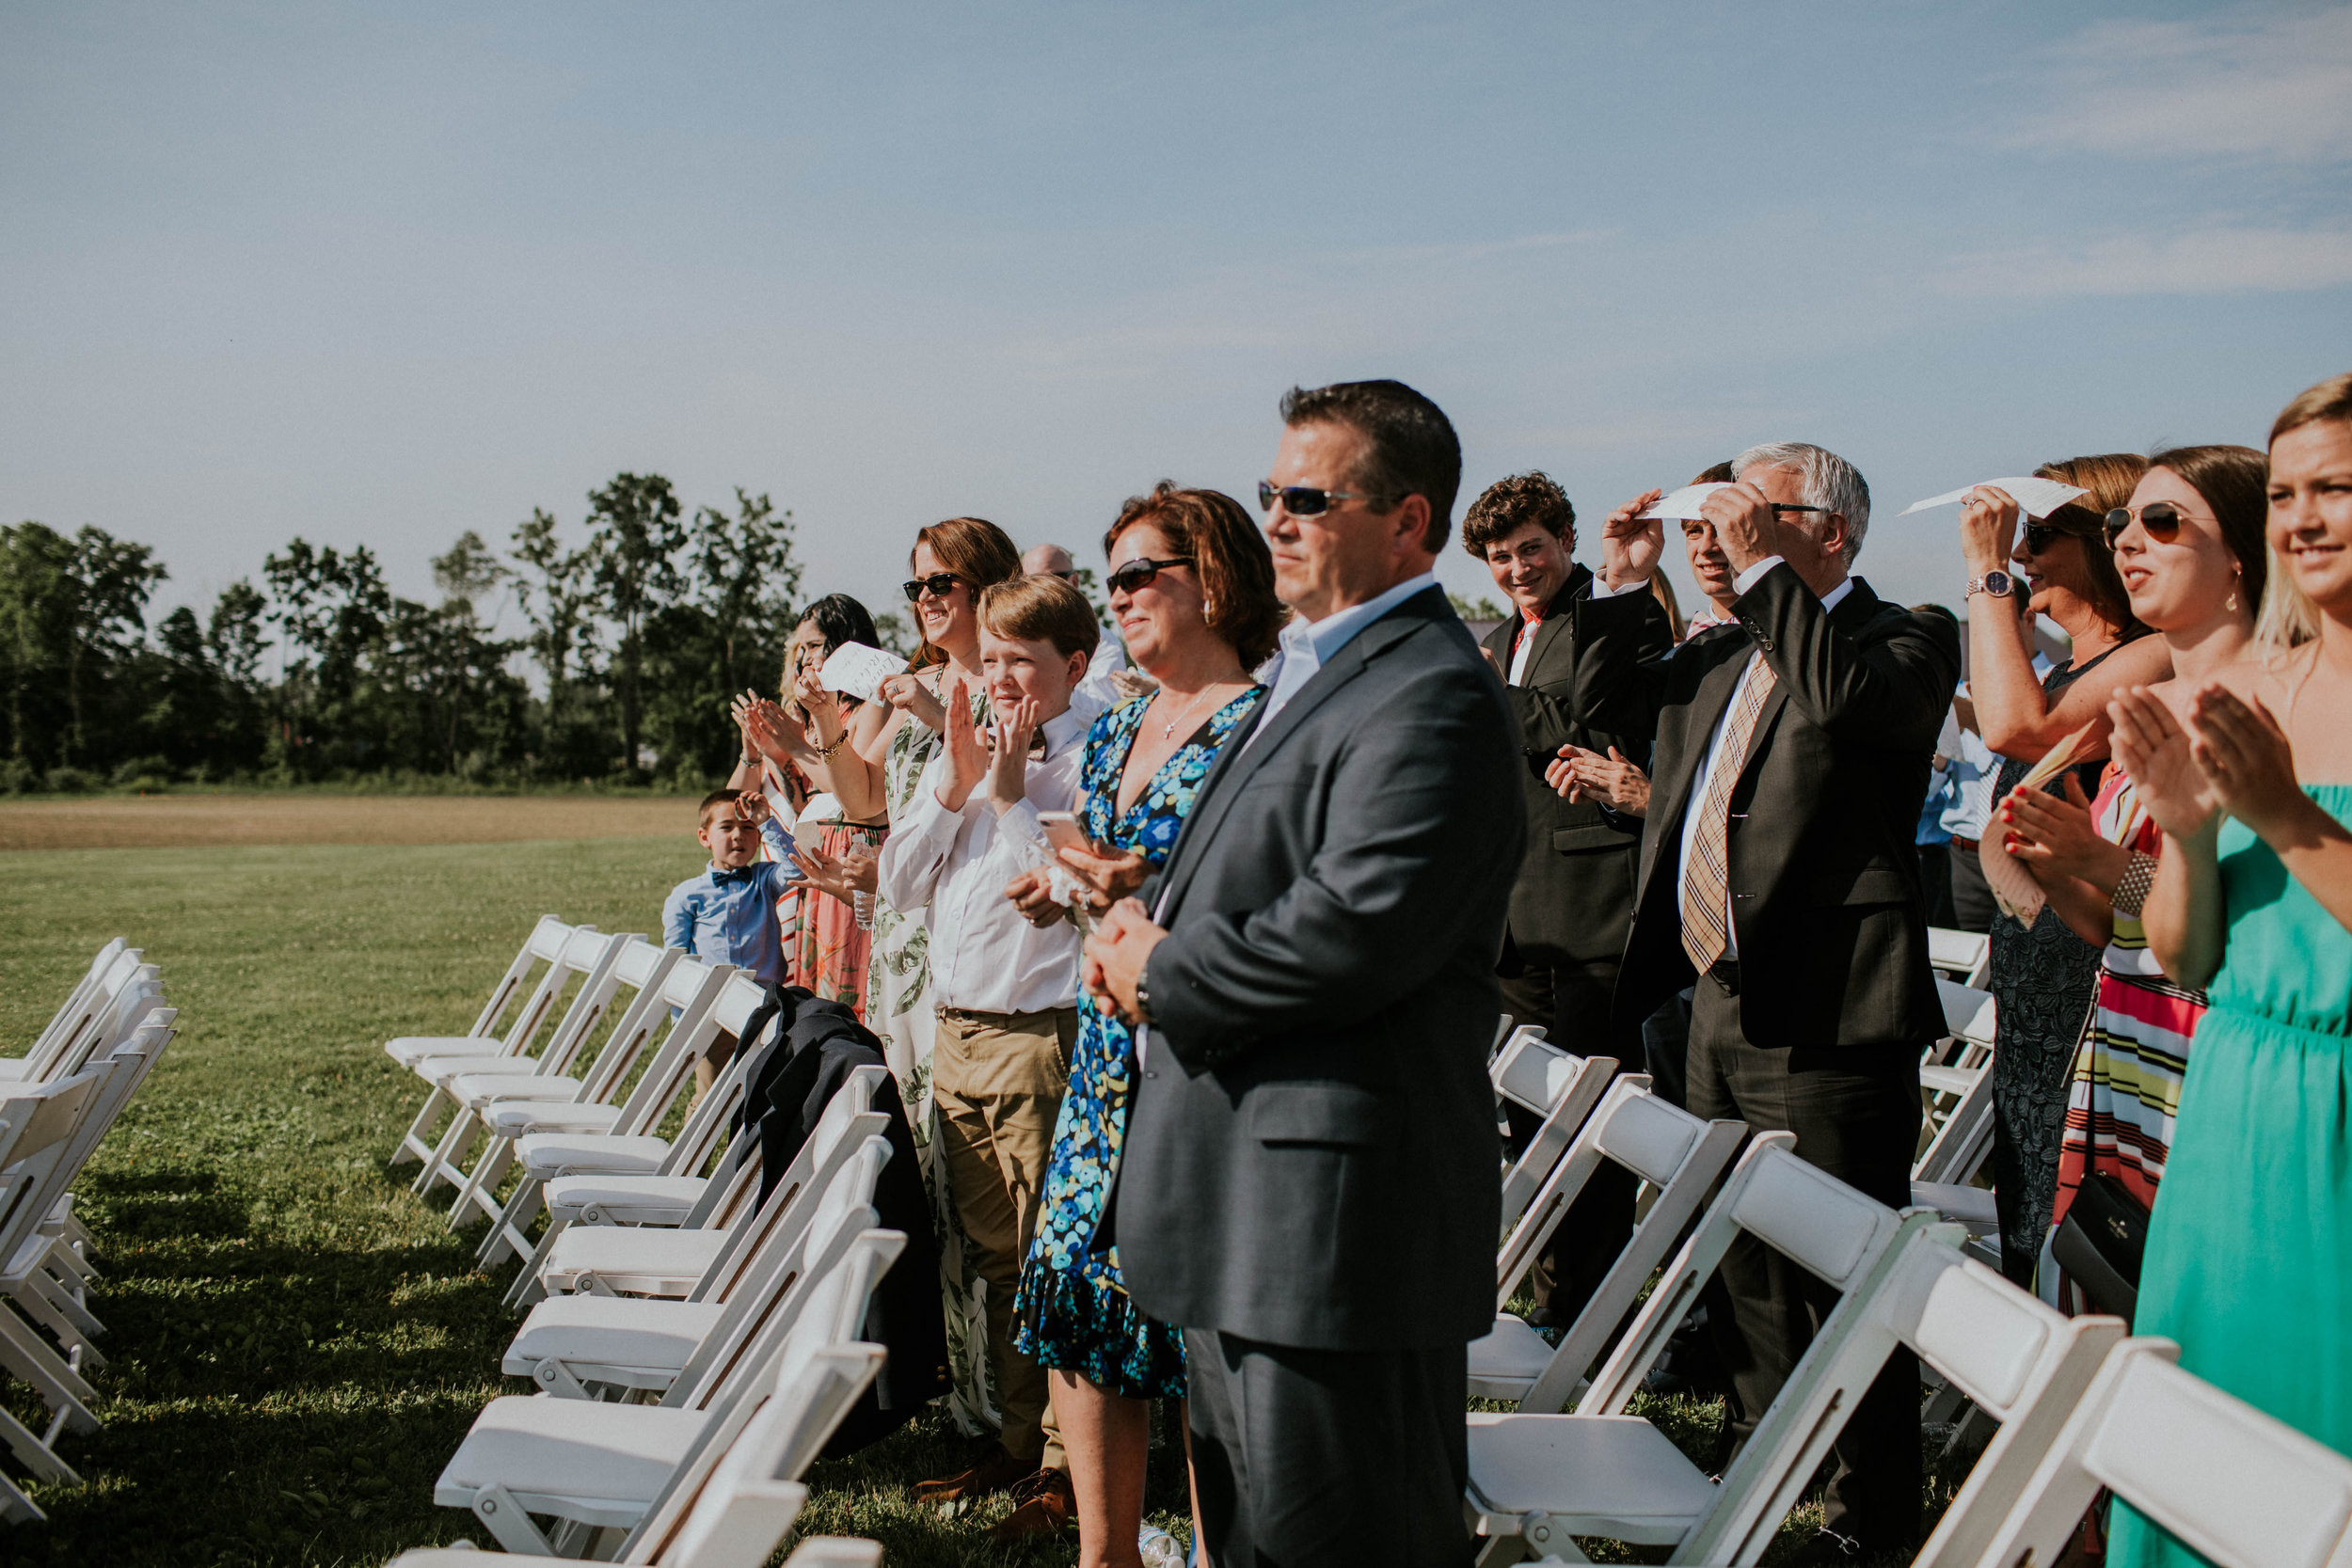 columbus ohio wedding photographer grace e jones photography142.jpg